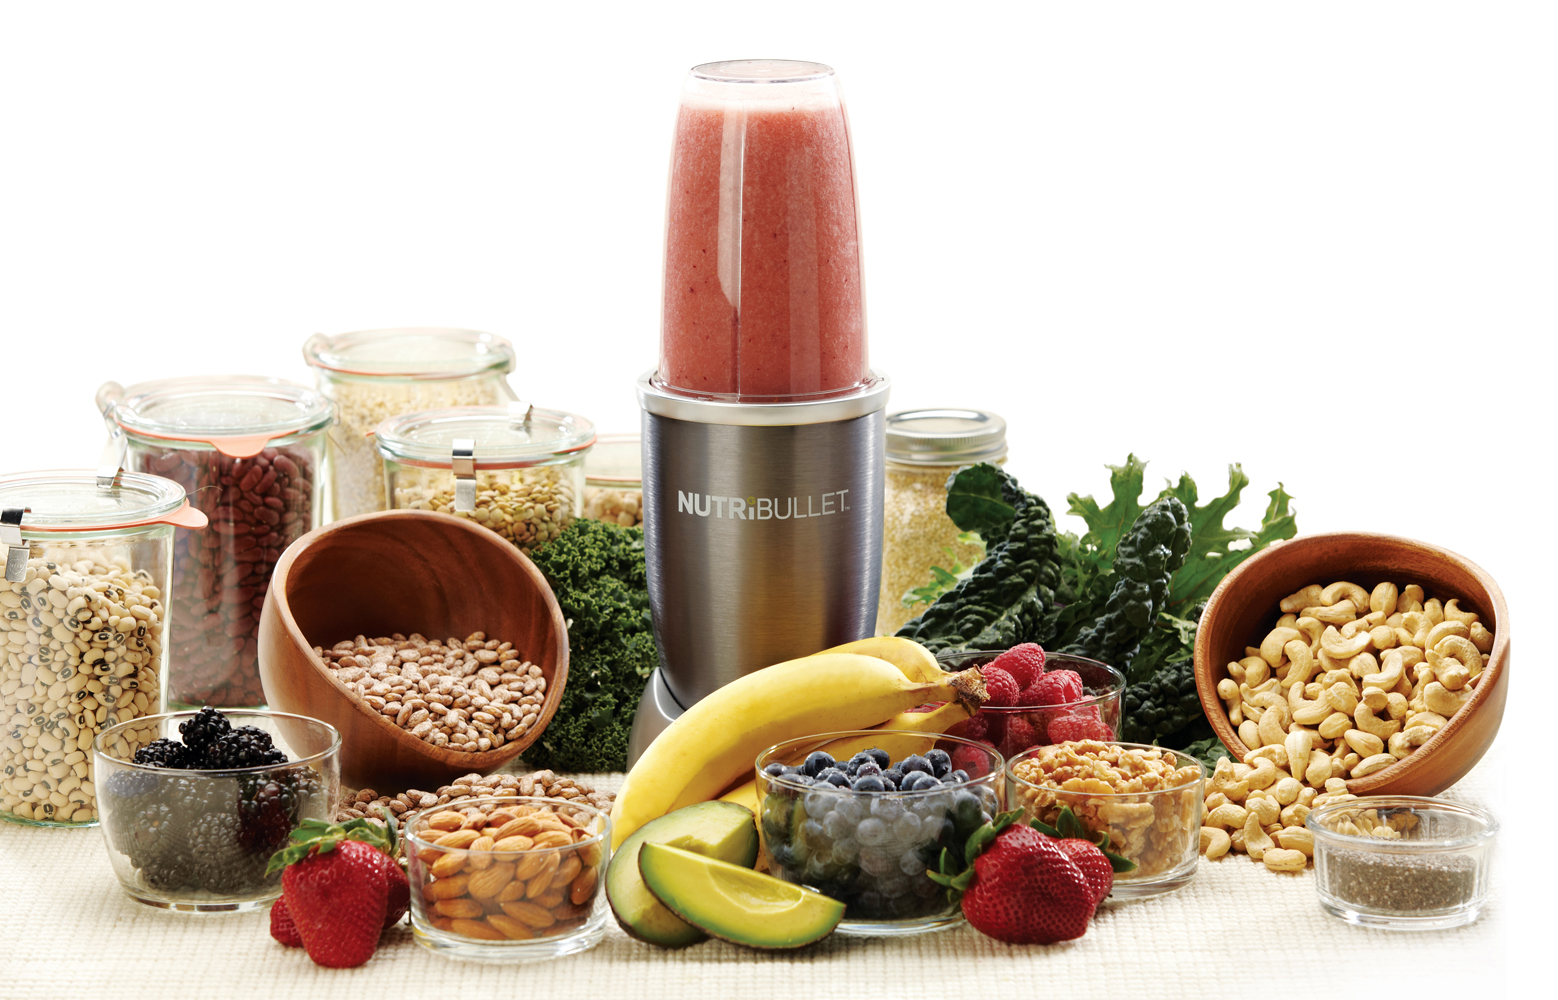 Nutribullet%20fruit%20veg%20HR.jpg